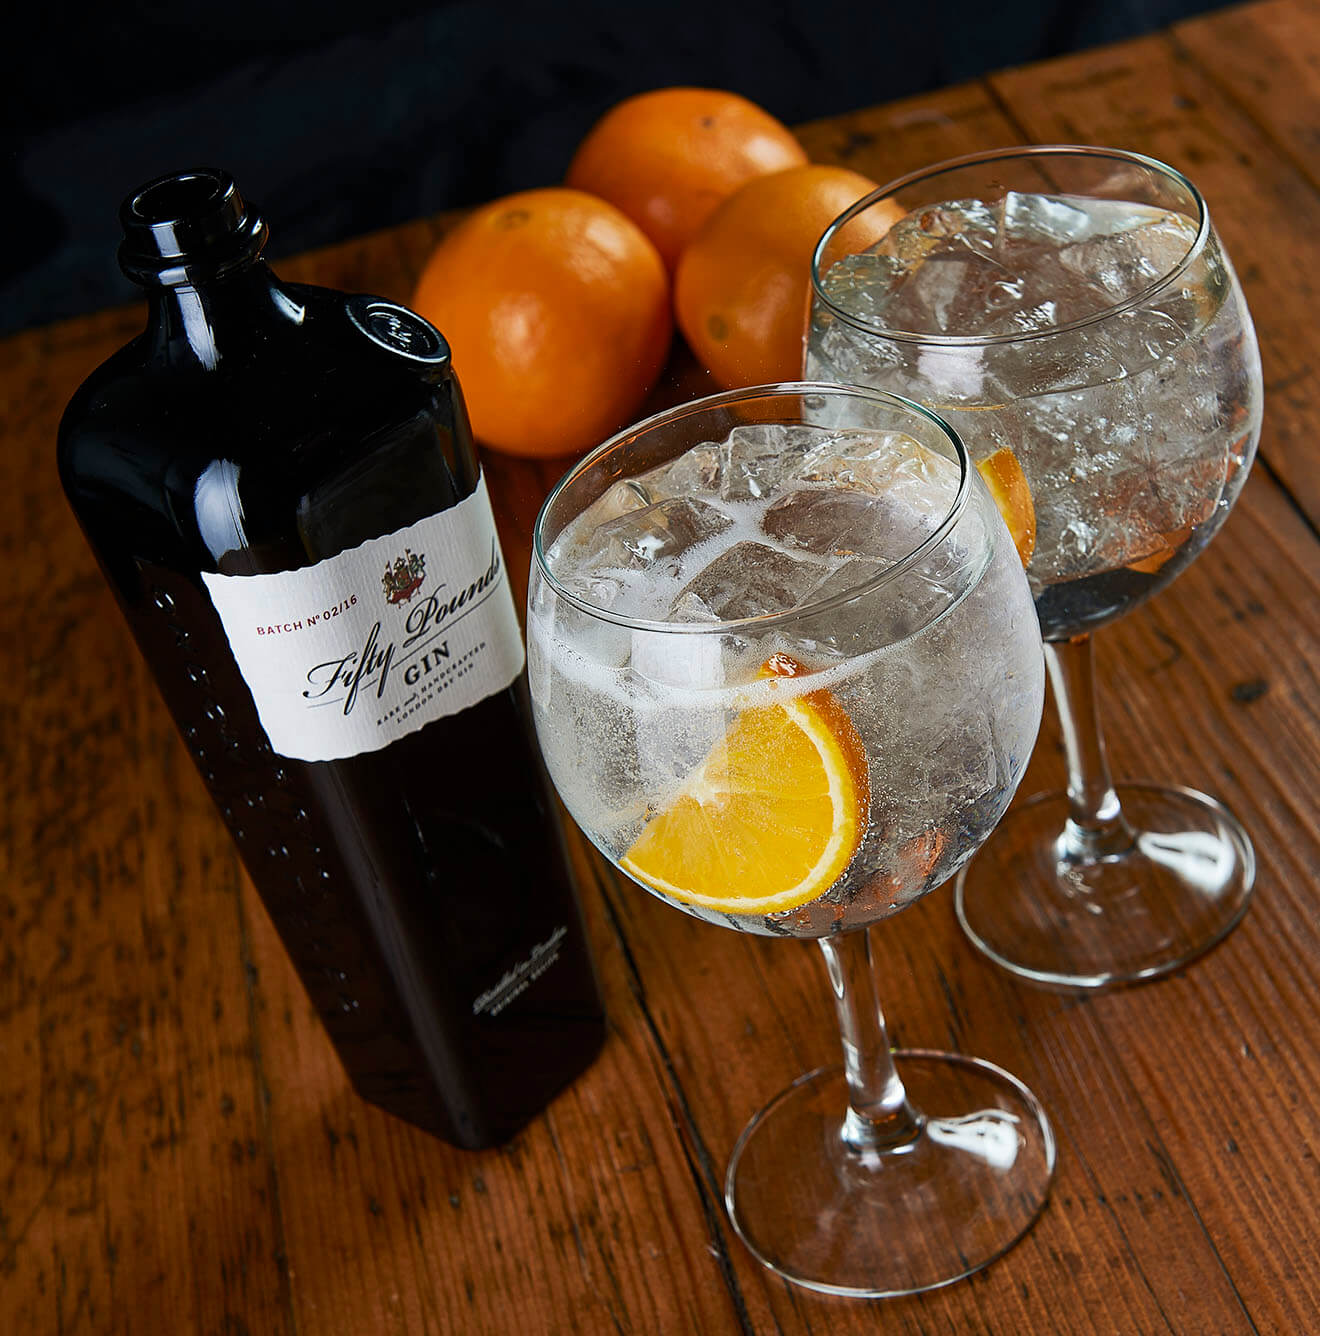 Fifty Pounds Gin & Tonic with Oranges